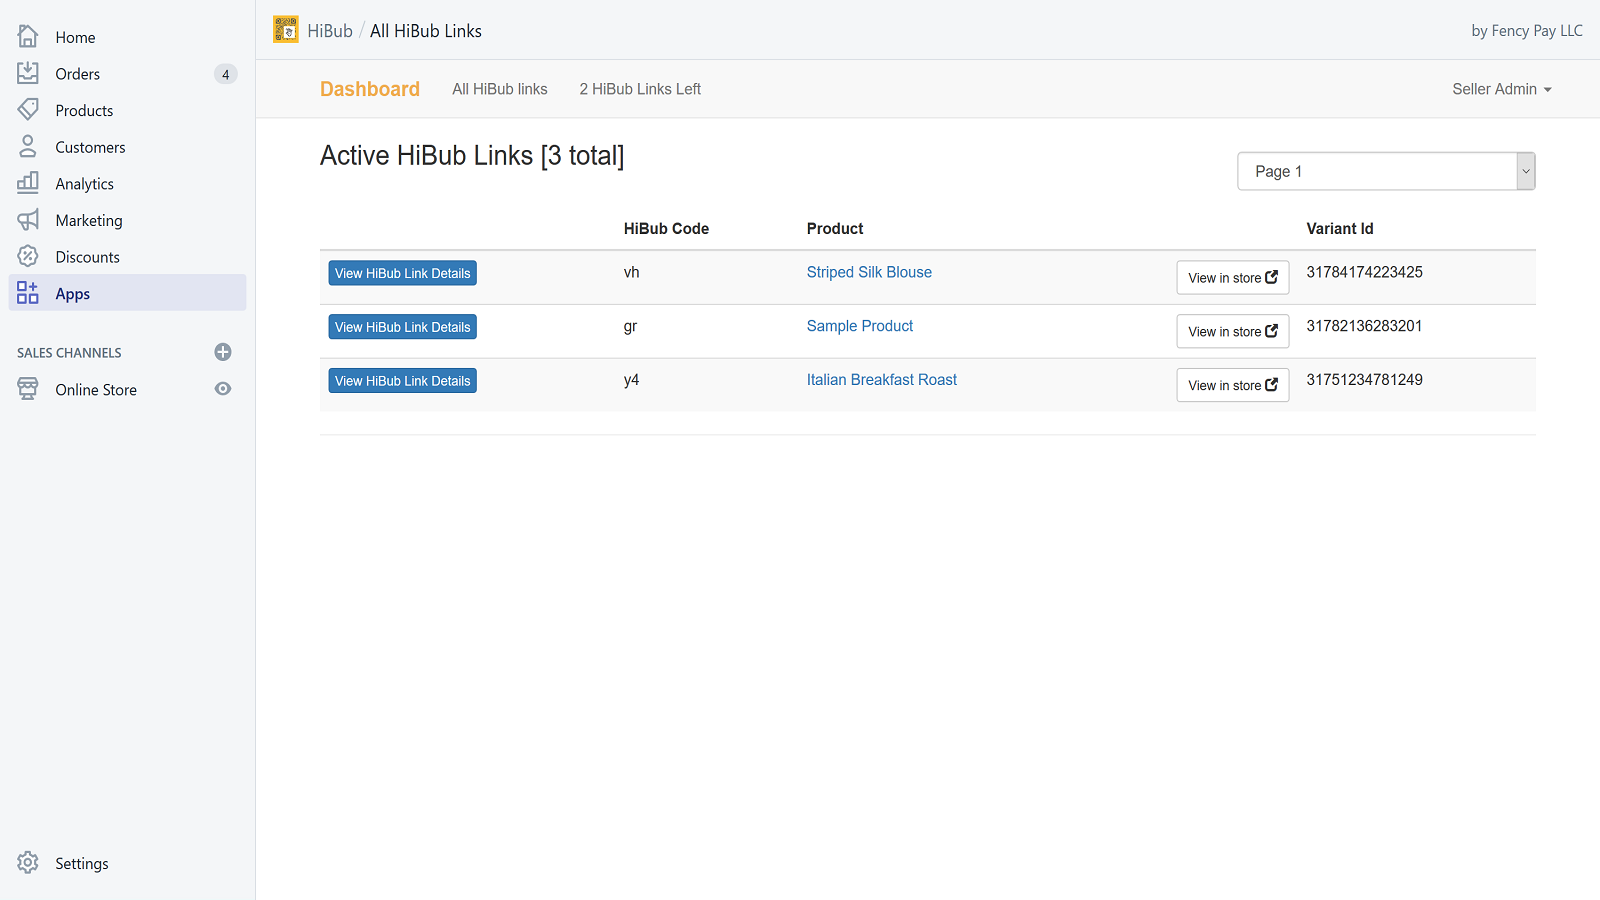 Manage all your HiBub links